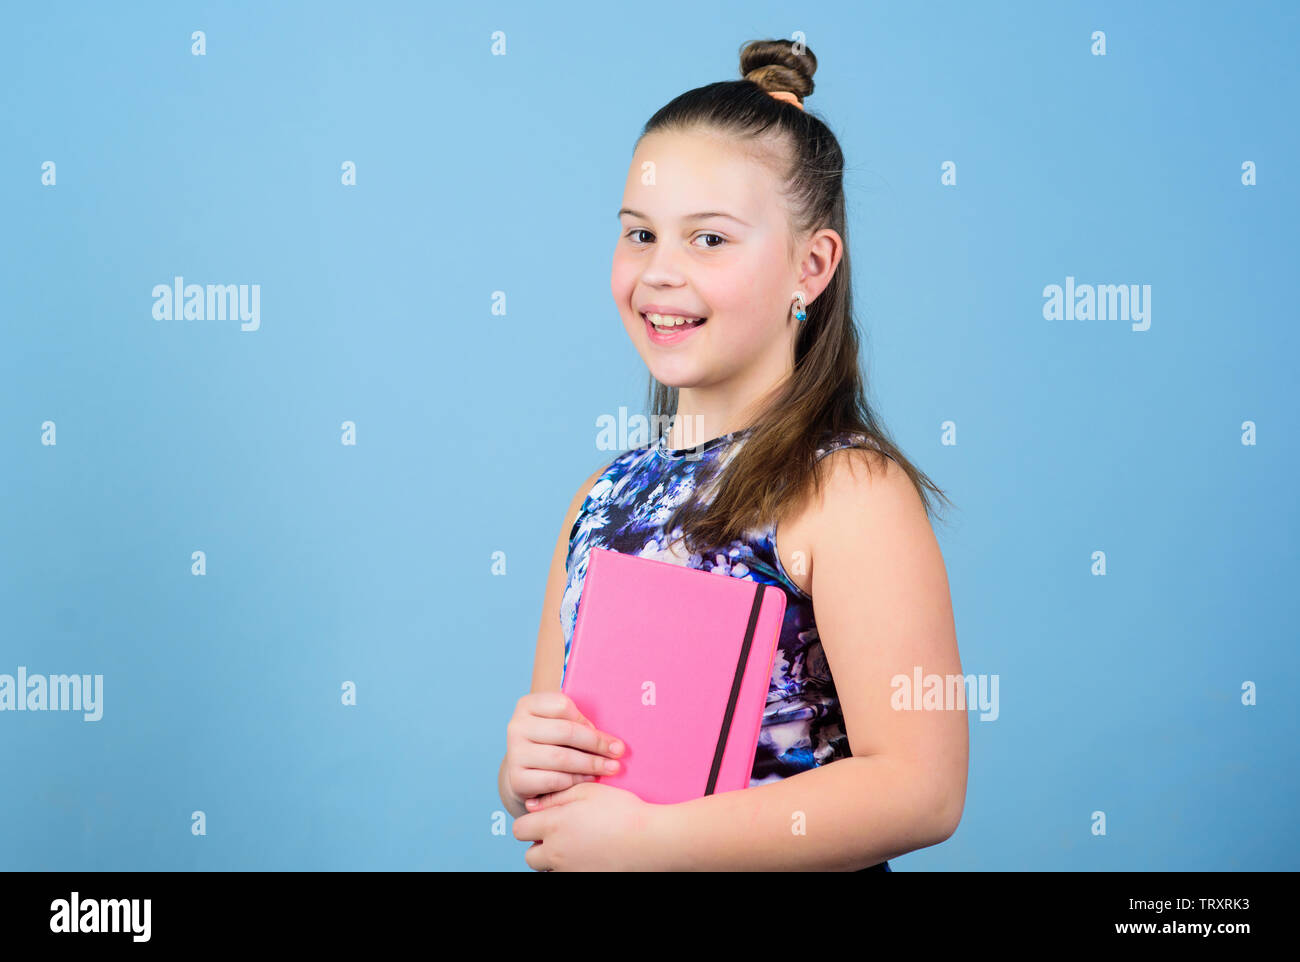 small girl with pink note book. school child with notepad. Smart and adorable. schoolgirl ready for lesson. school diaries for making note. love reading book. workbooks for writing. student read book. - Stock Image